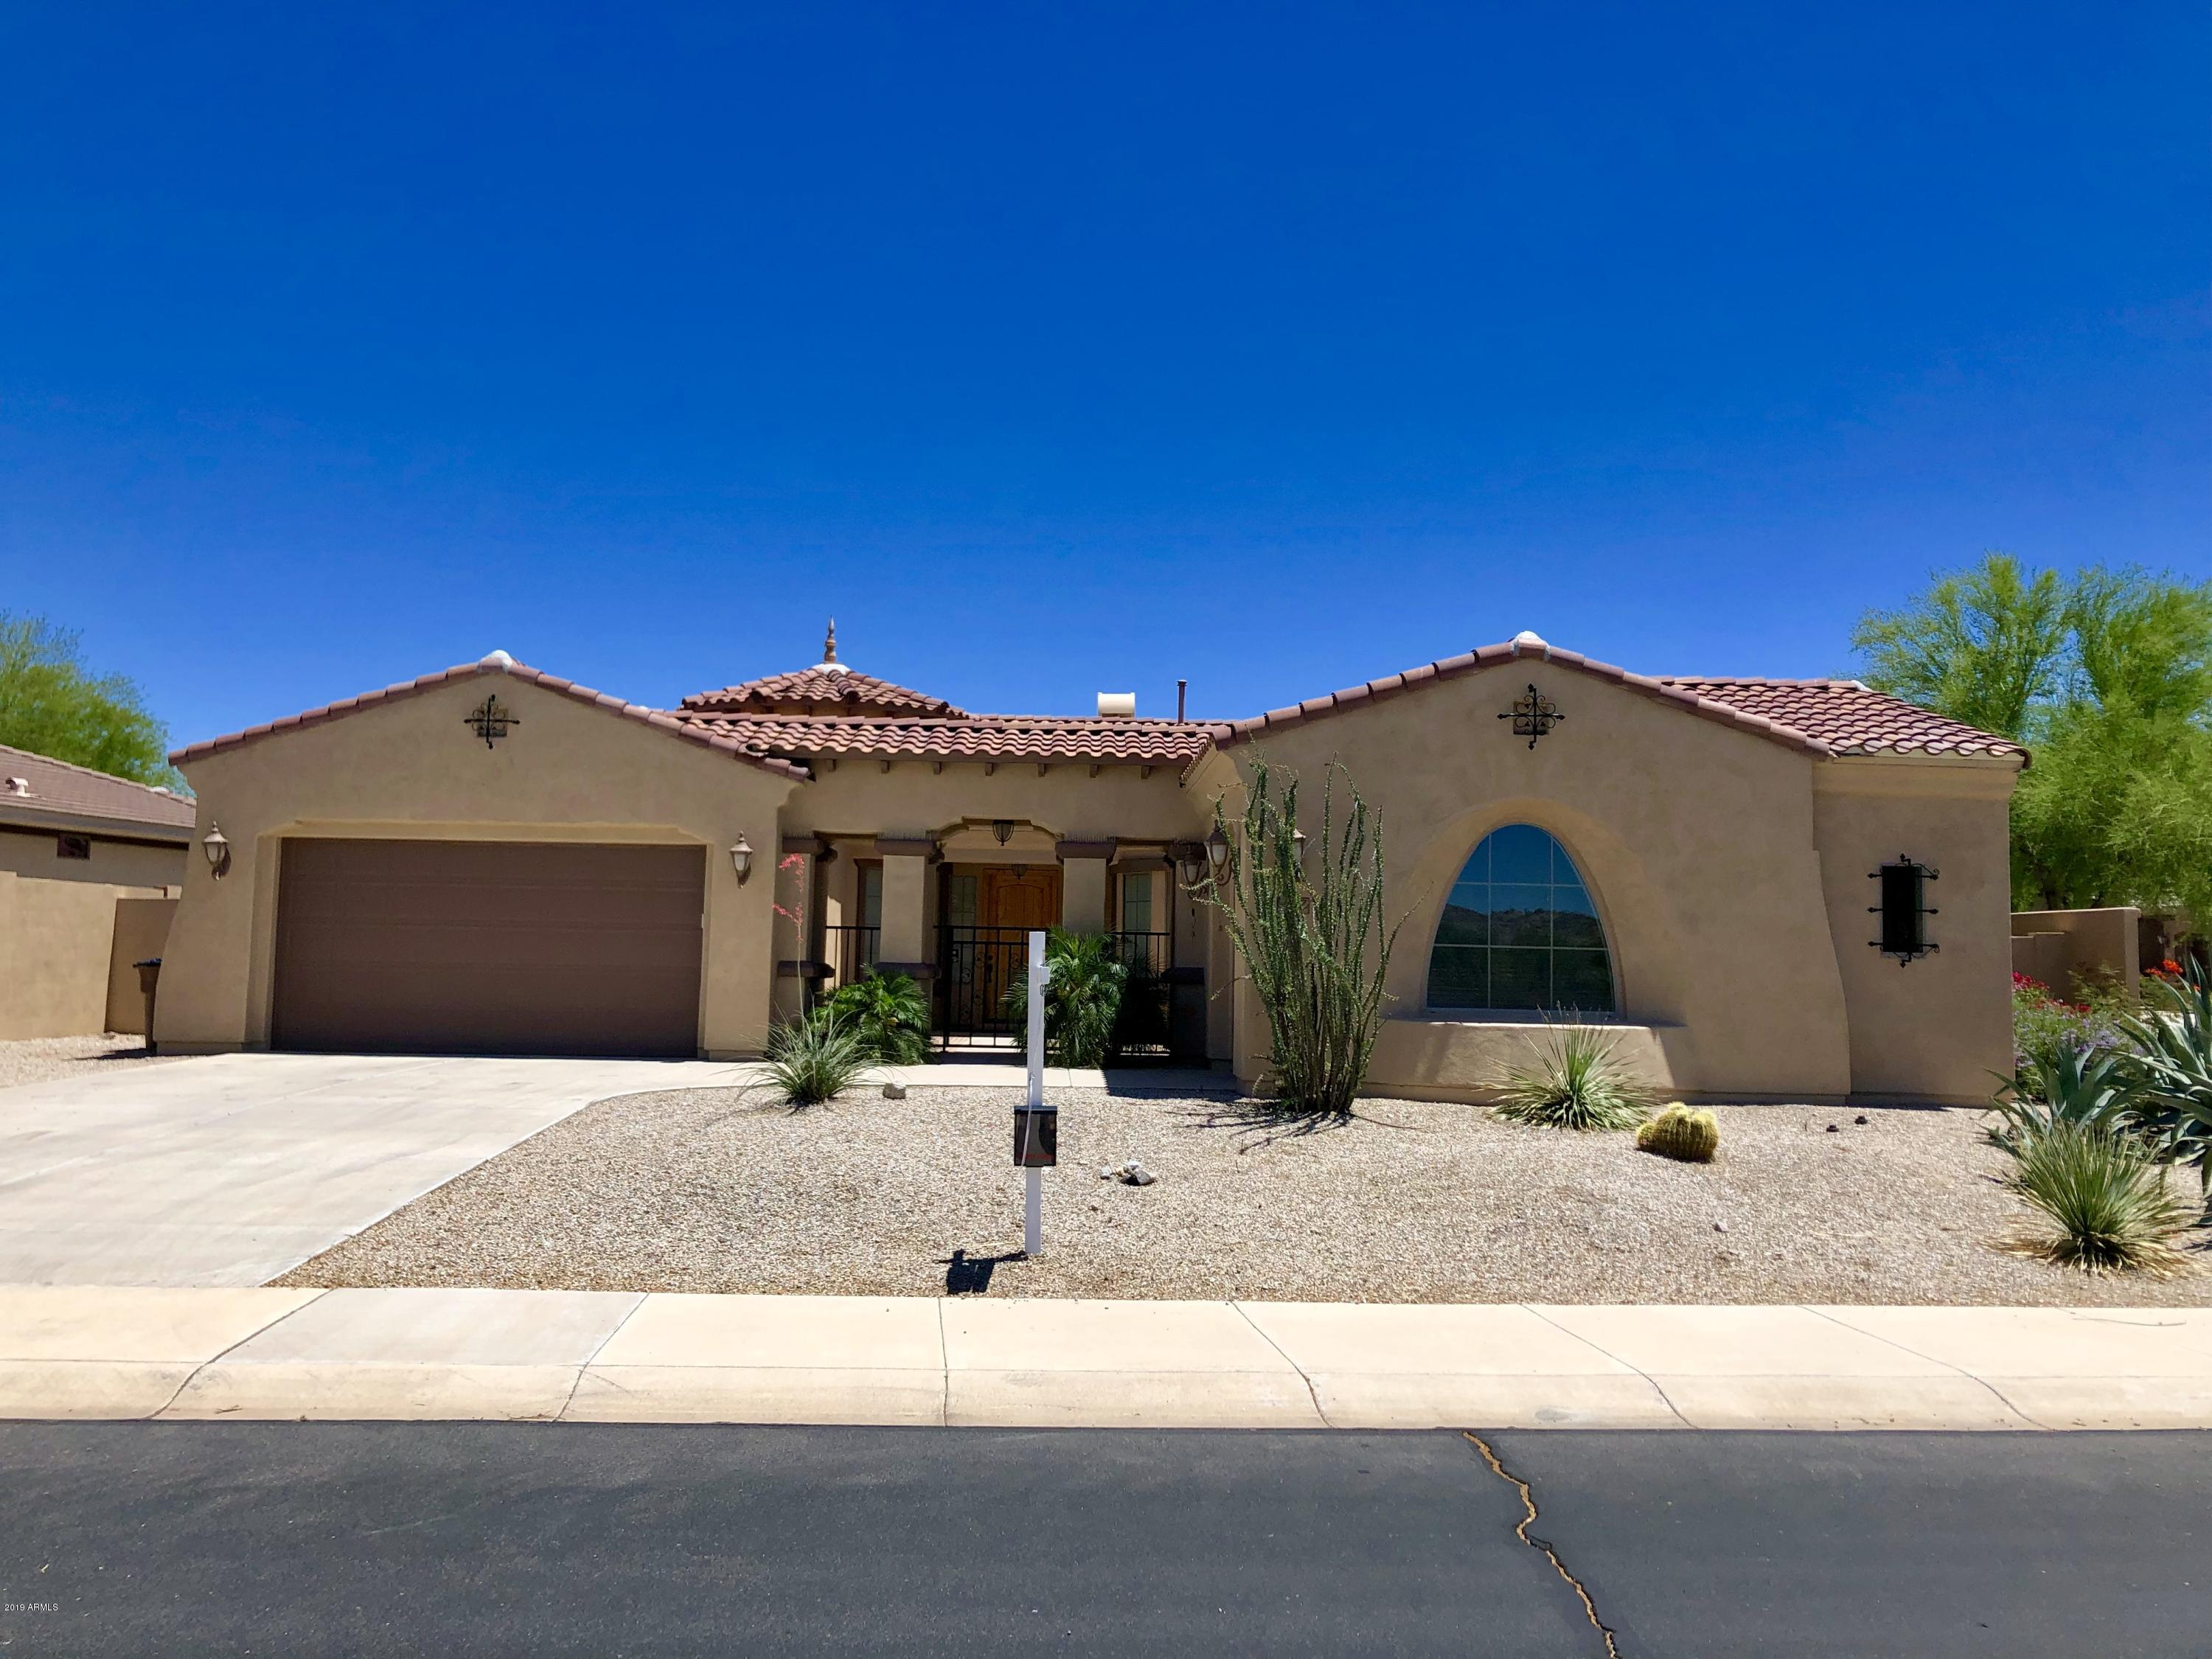 Photo of 18127 W NARRAMORE Road, Goodyear, AZ 85338